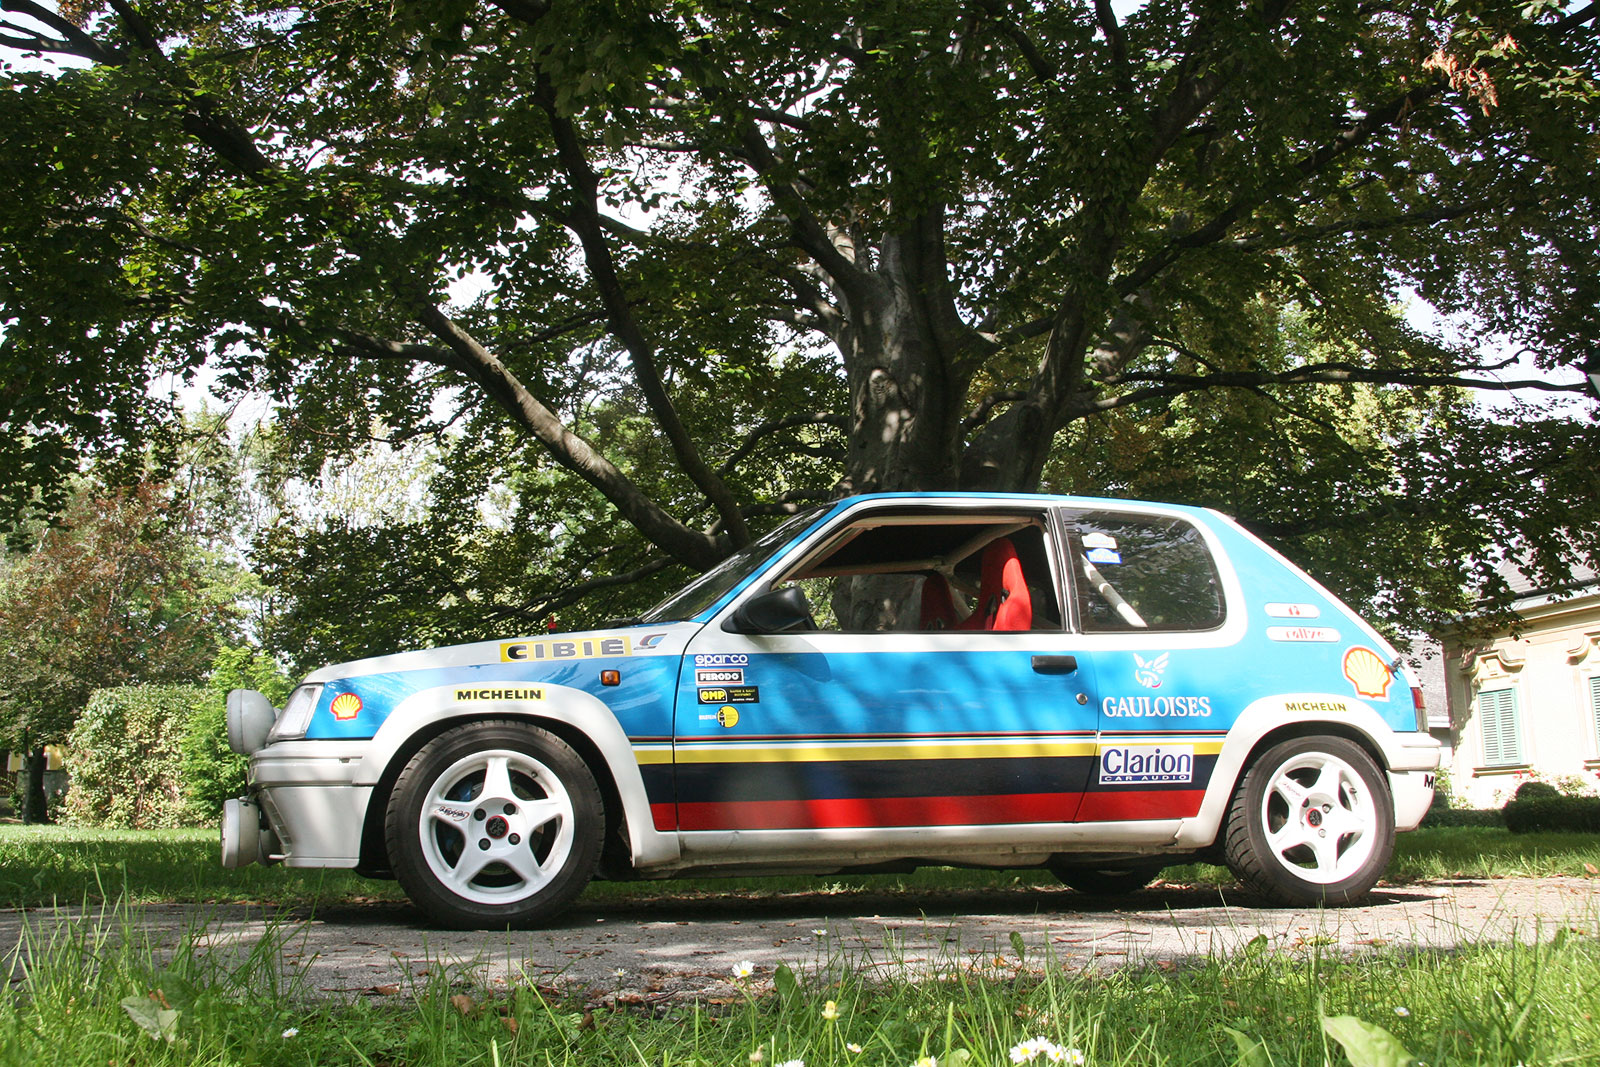 peugeot 205 rally the schwab collection vintage rally cars. Black Bedroom Furniture Sets. Home Design Ideas